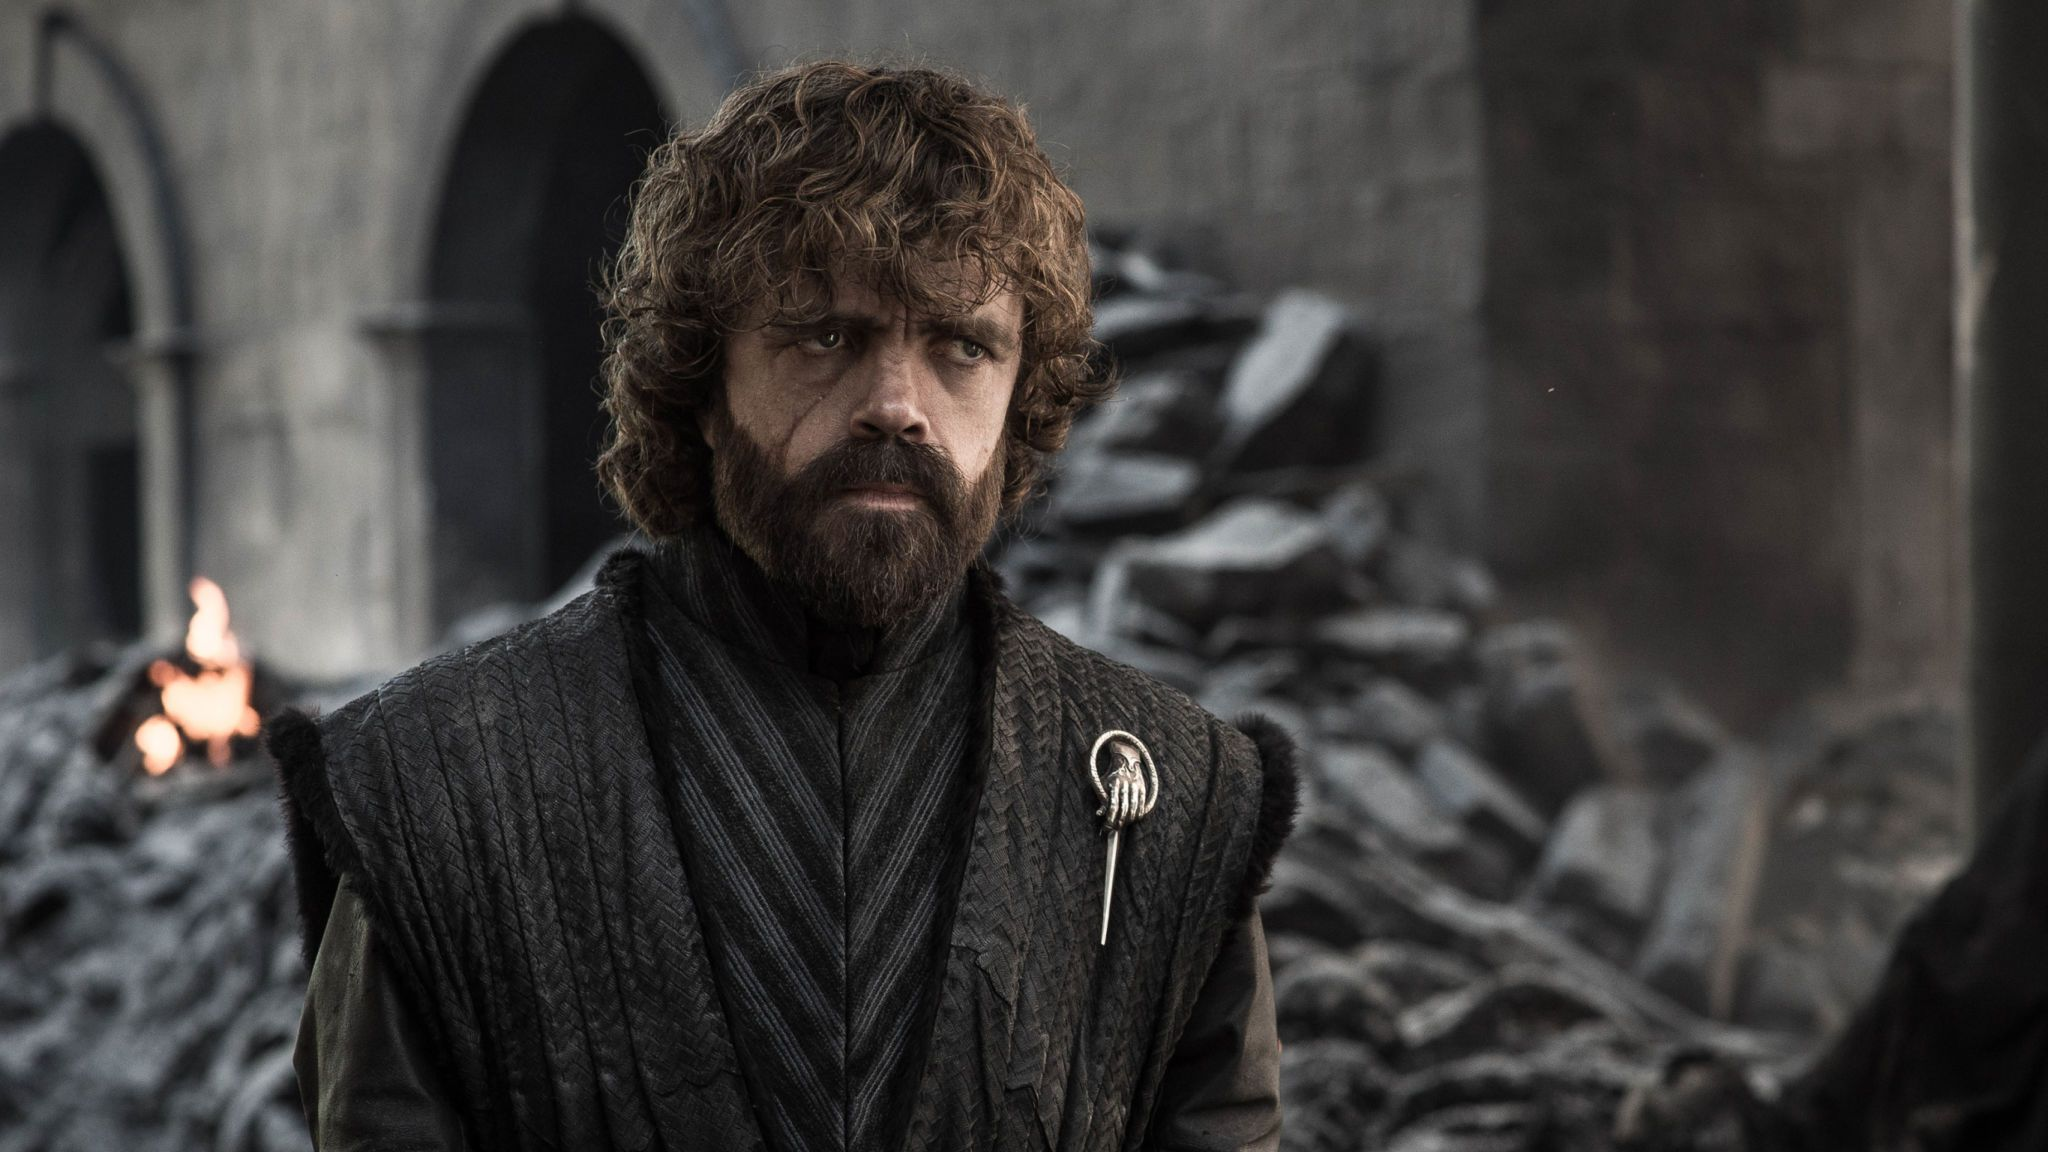 Peter Dinklage as Tyrion Lannister. Pic: HBO/Sky Atlantic